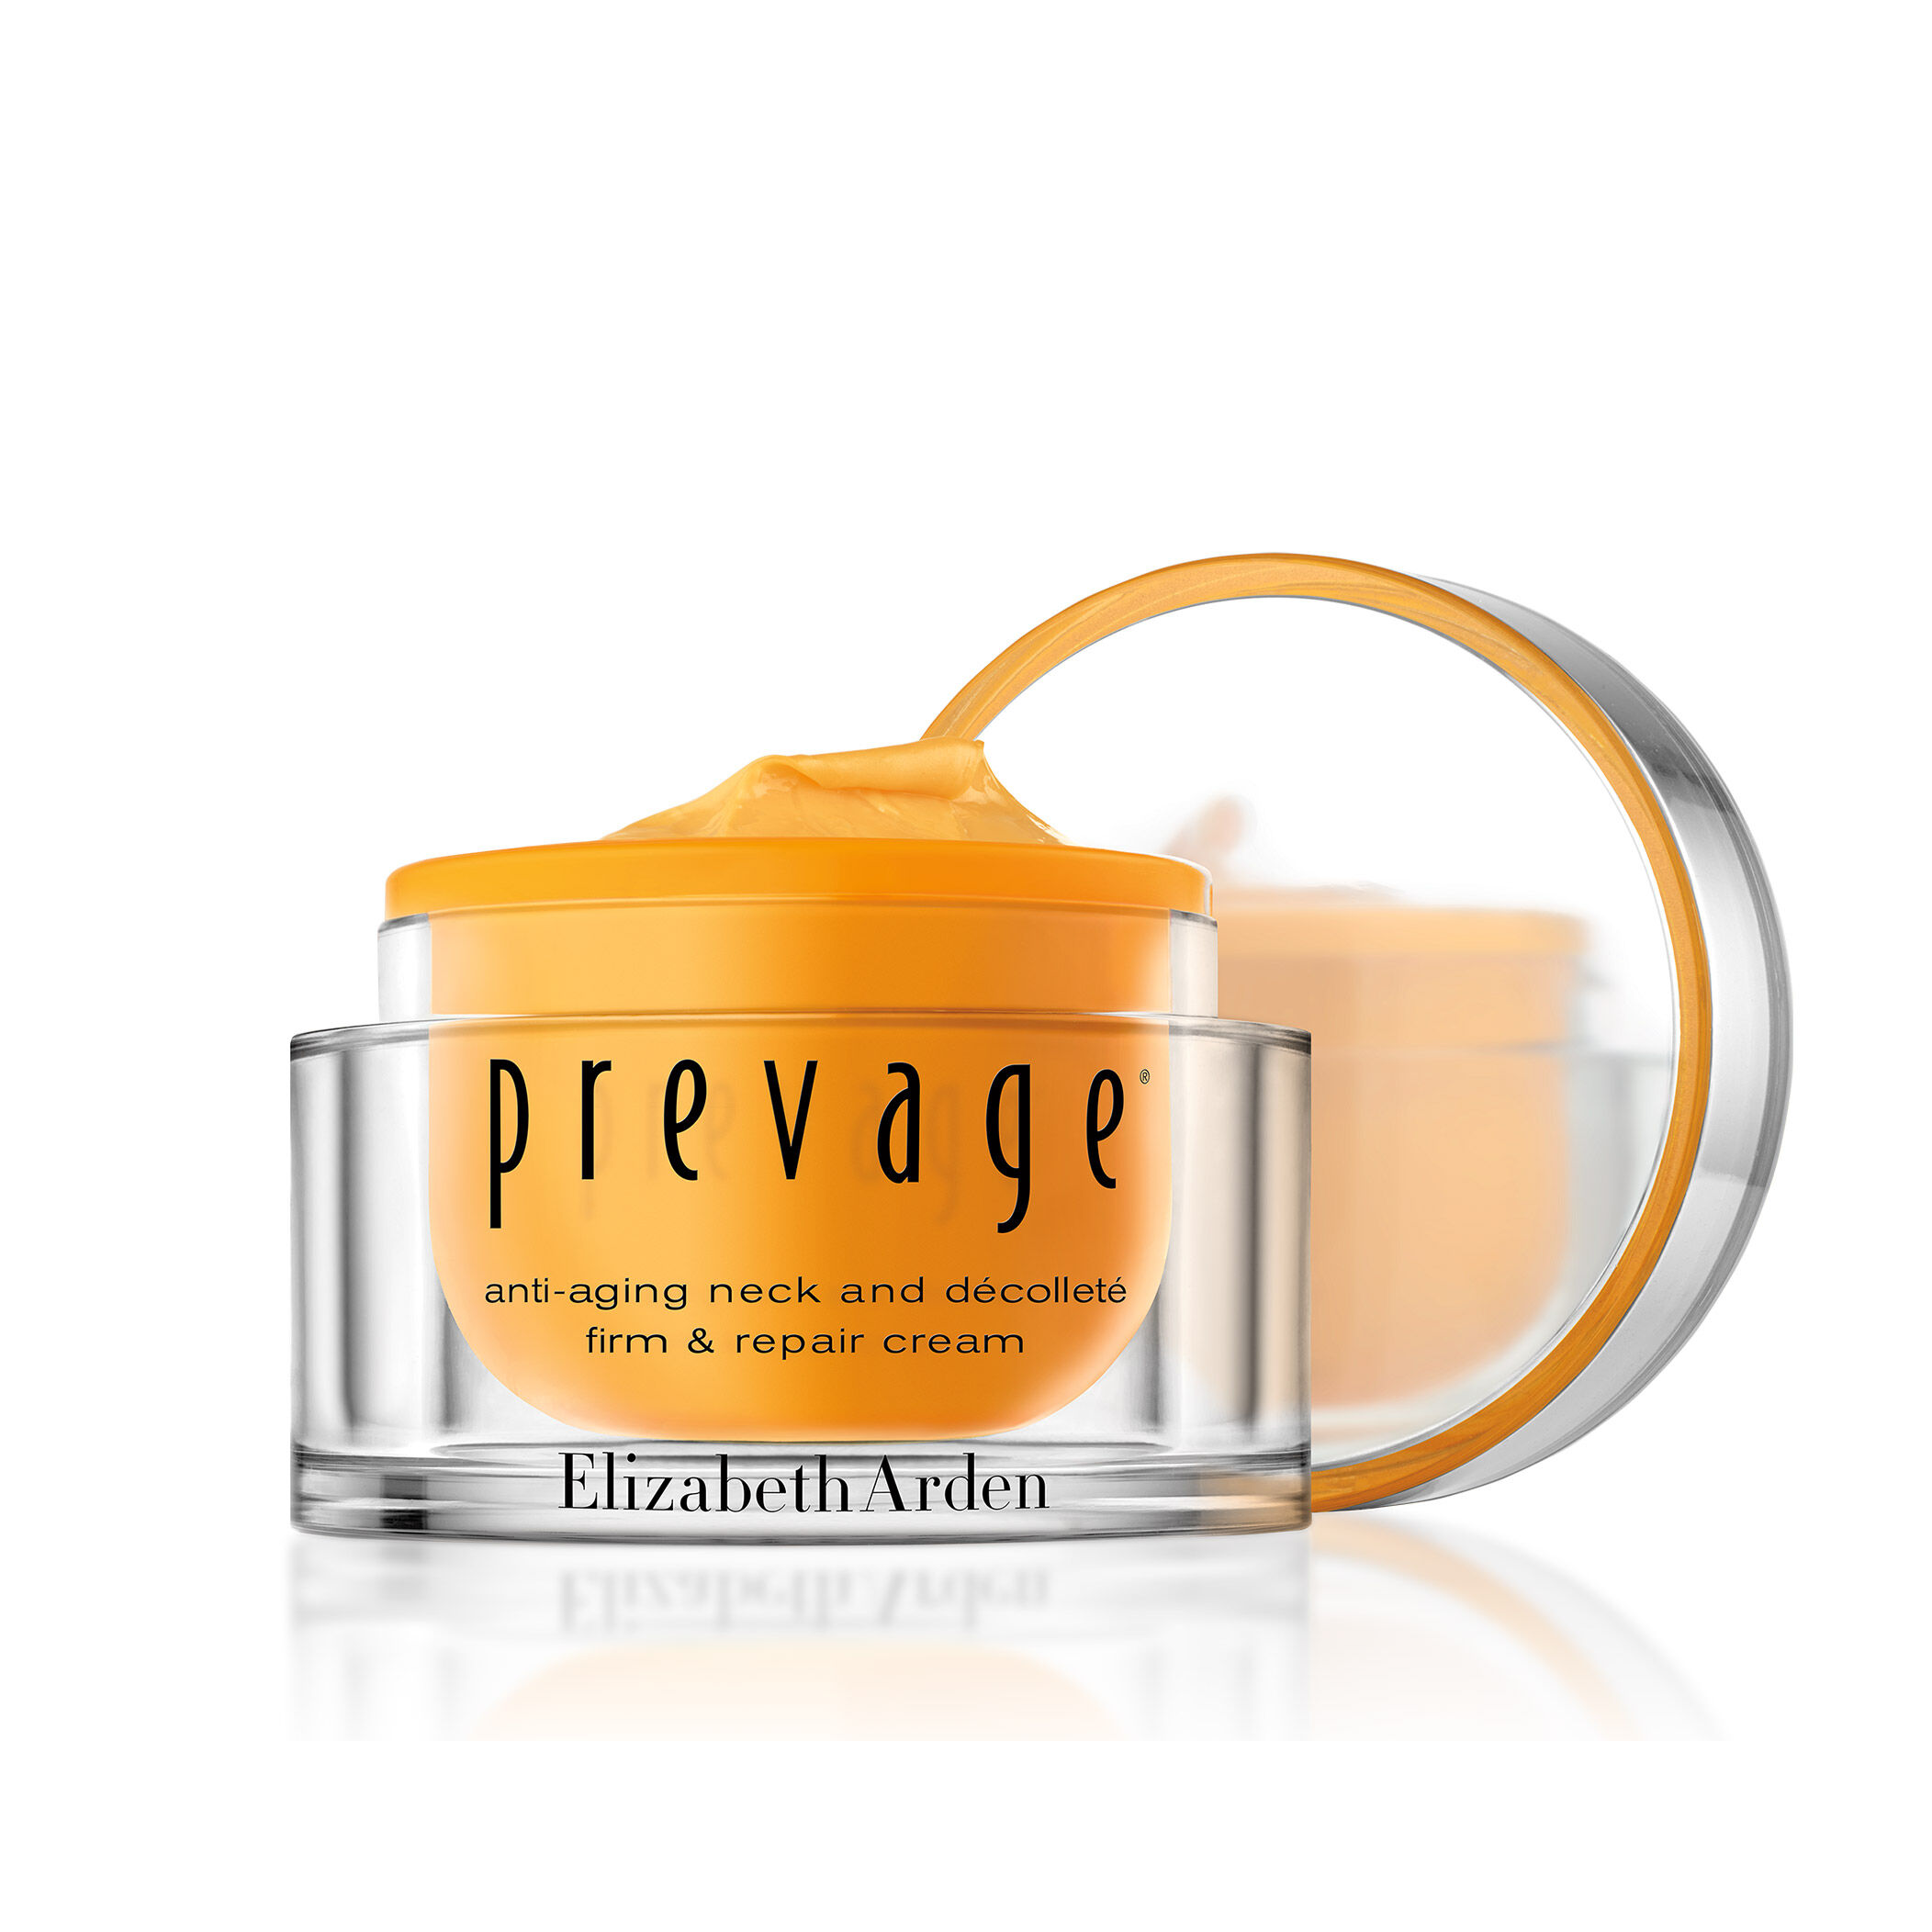 PREVAGE Anti-Aging Neck and Décolleté Firm and Repair Cream